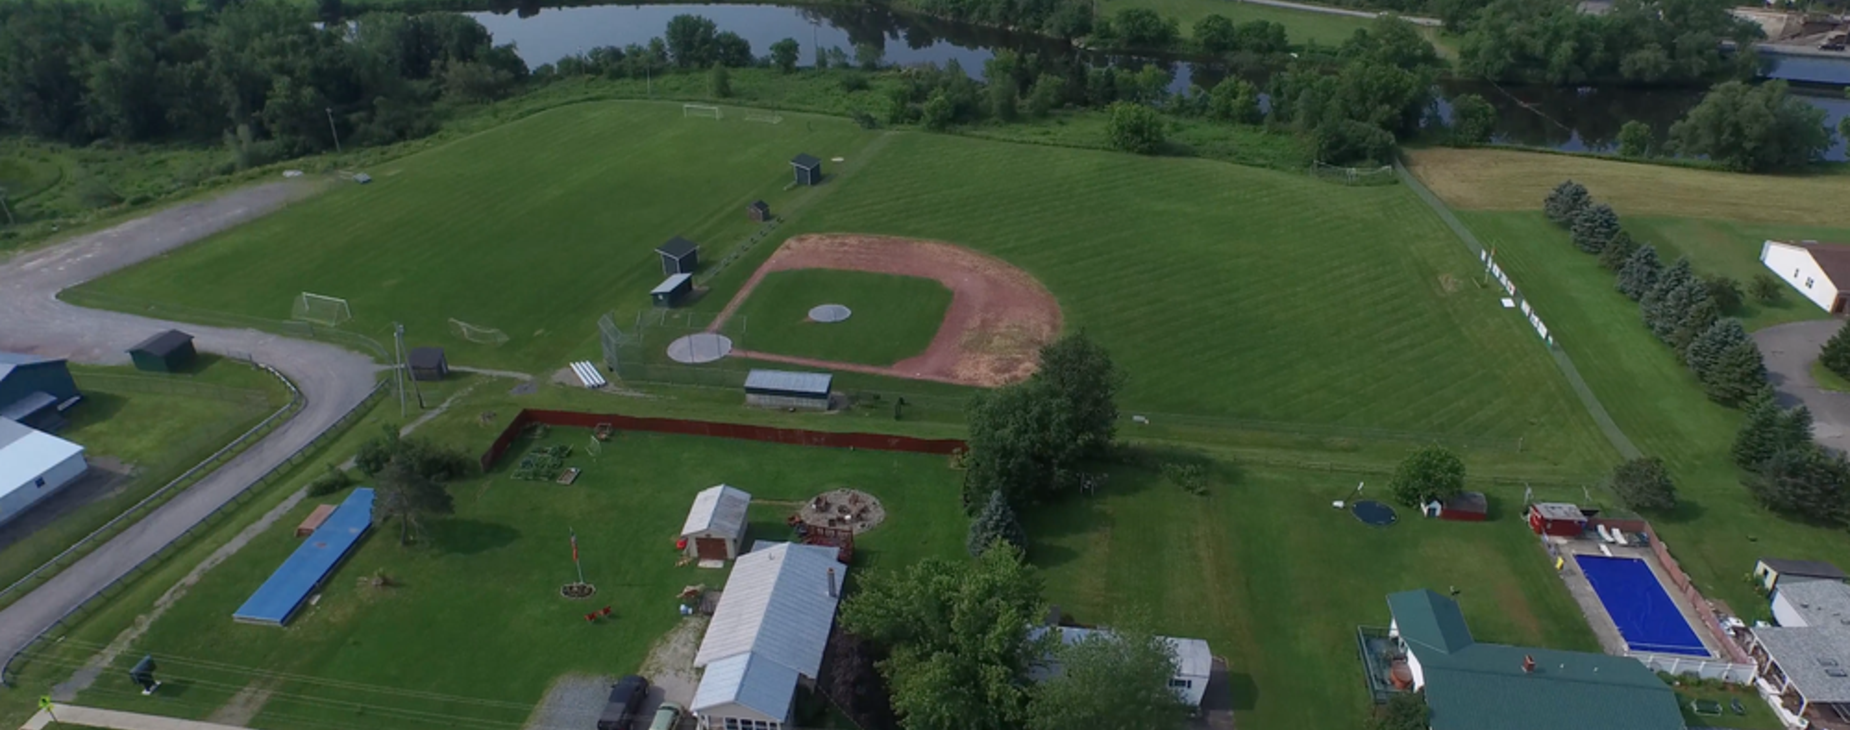 drone view of school